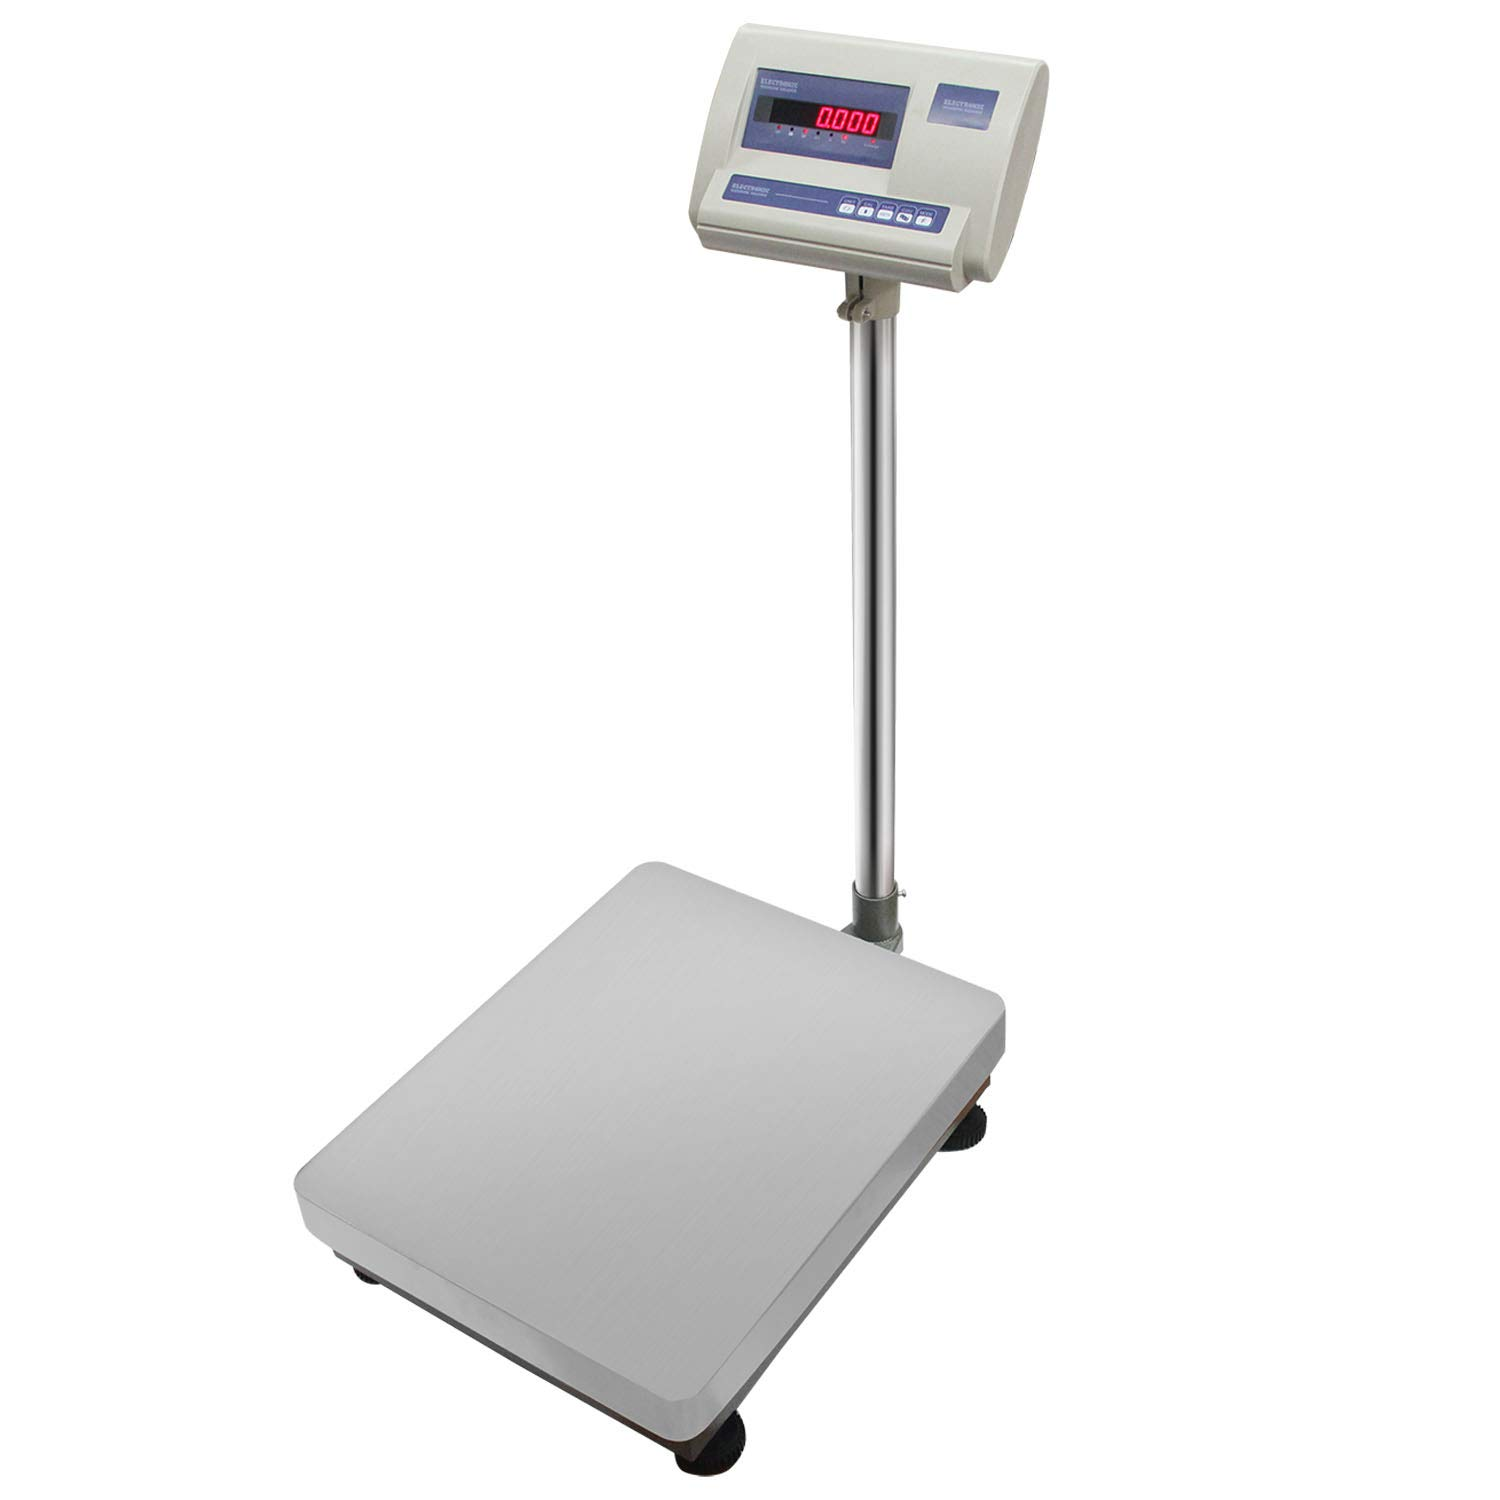 BAOSHISHAN 683LB Floor Platform Scale 310kg/10g Digital Scale Heavy Duty LED Display for Warehouse Shipping Postal with RS232 Interface